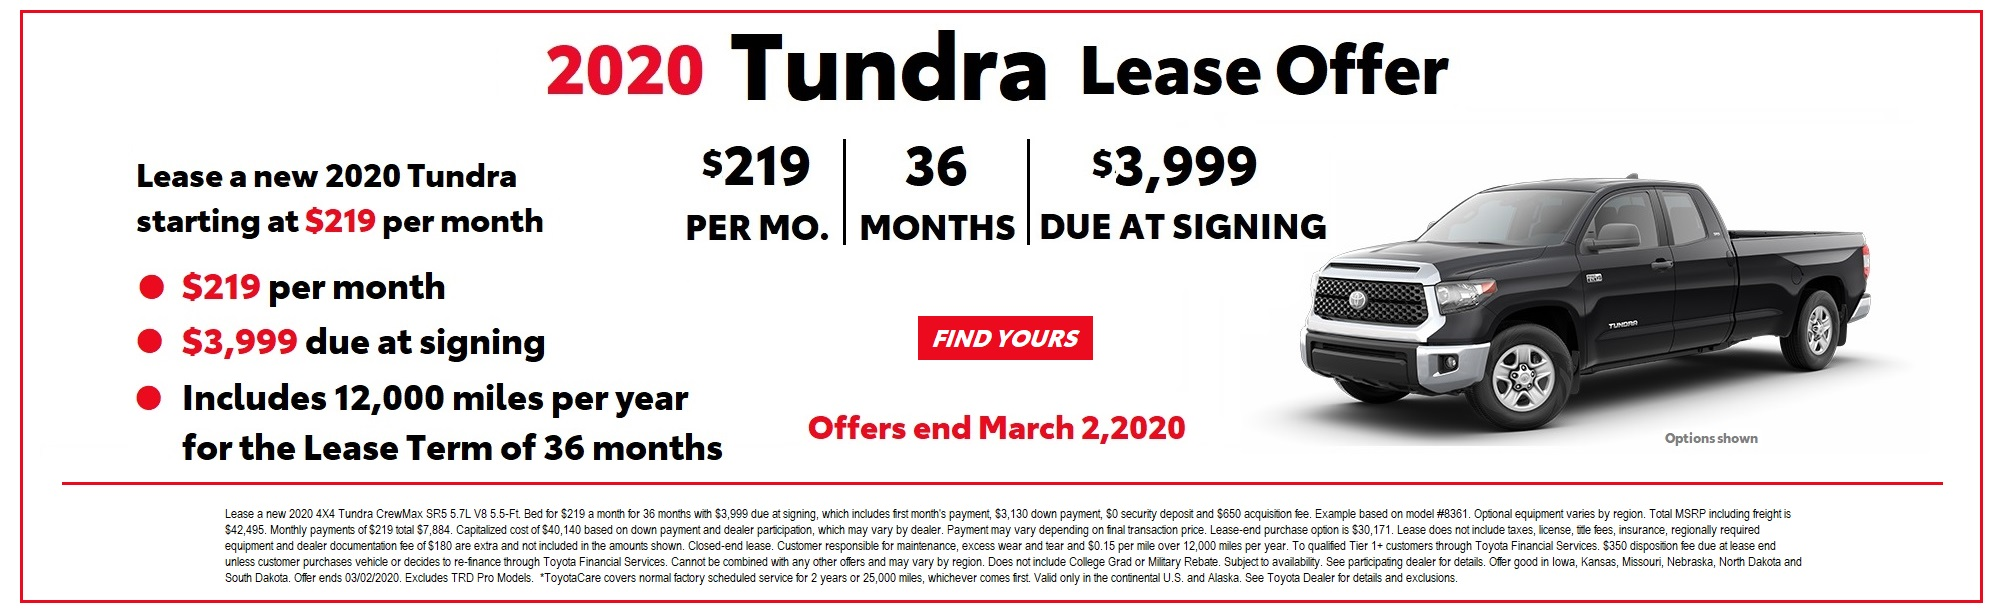 2020 Tundra Lease Offer February 2020